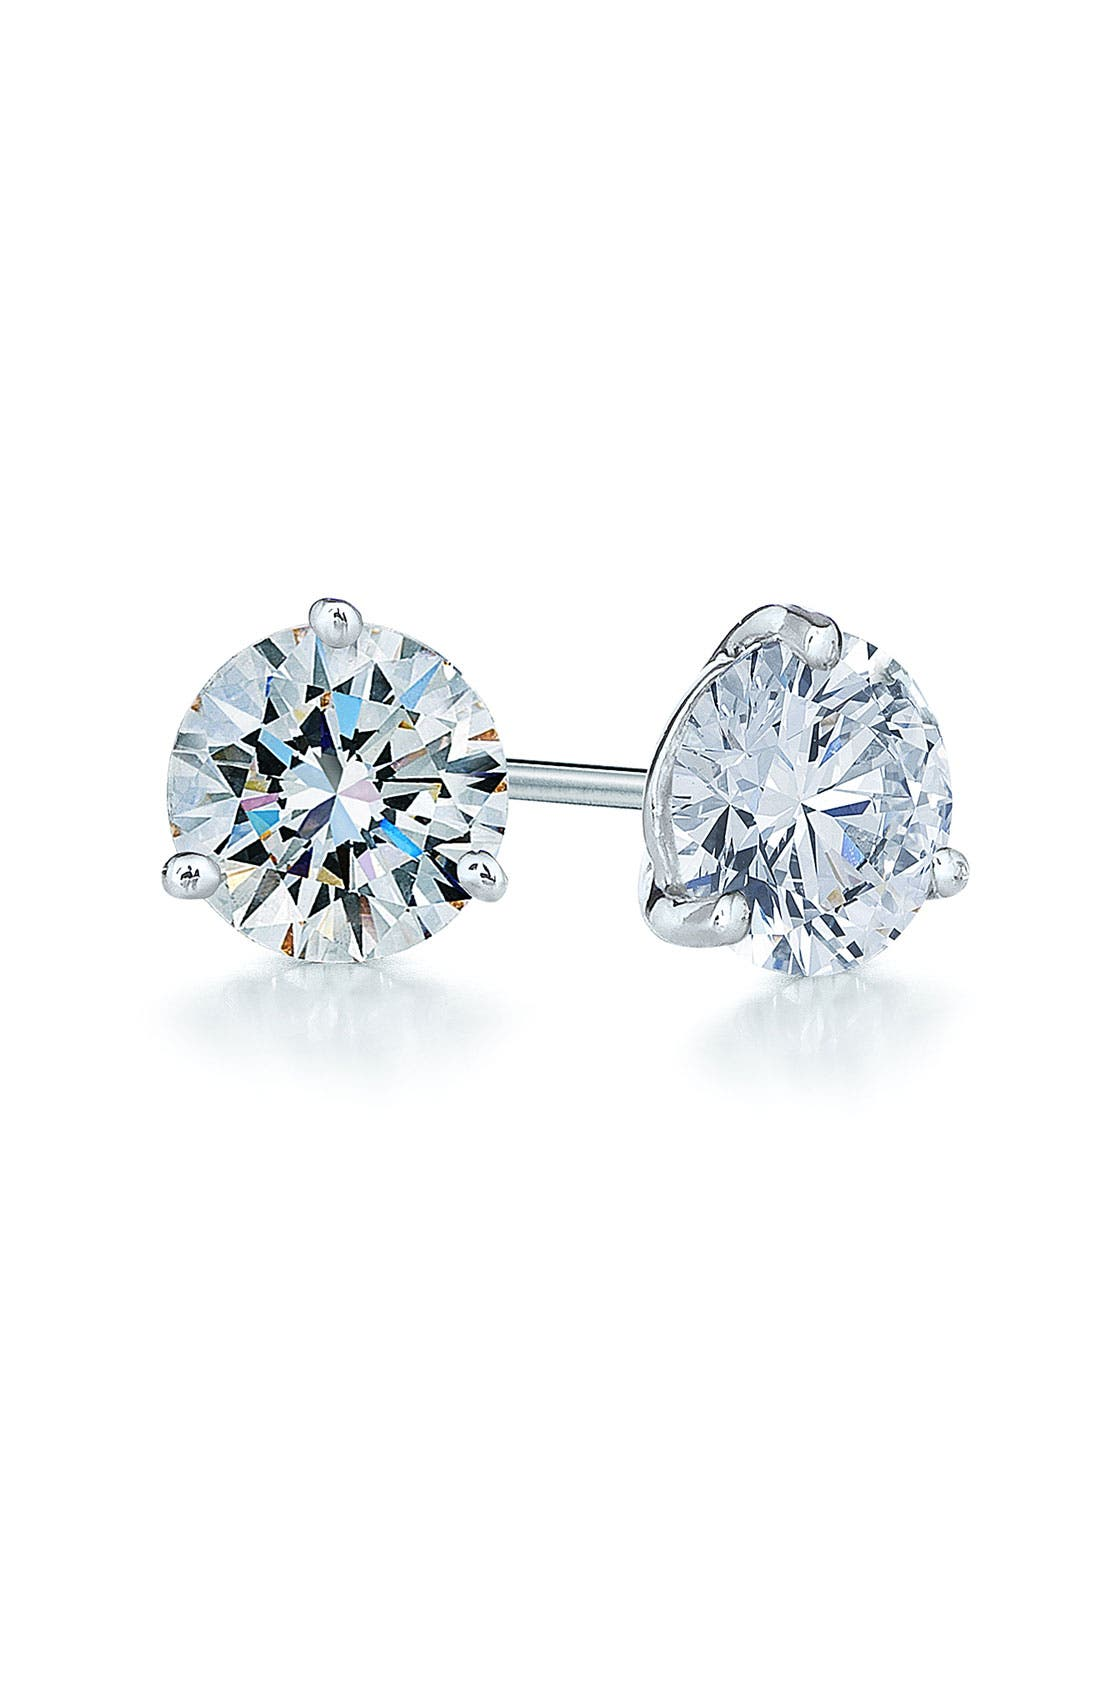 1.25ct tw Diamond & Platinum Stud Earrings, Main, color, PLATINUM